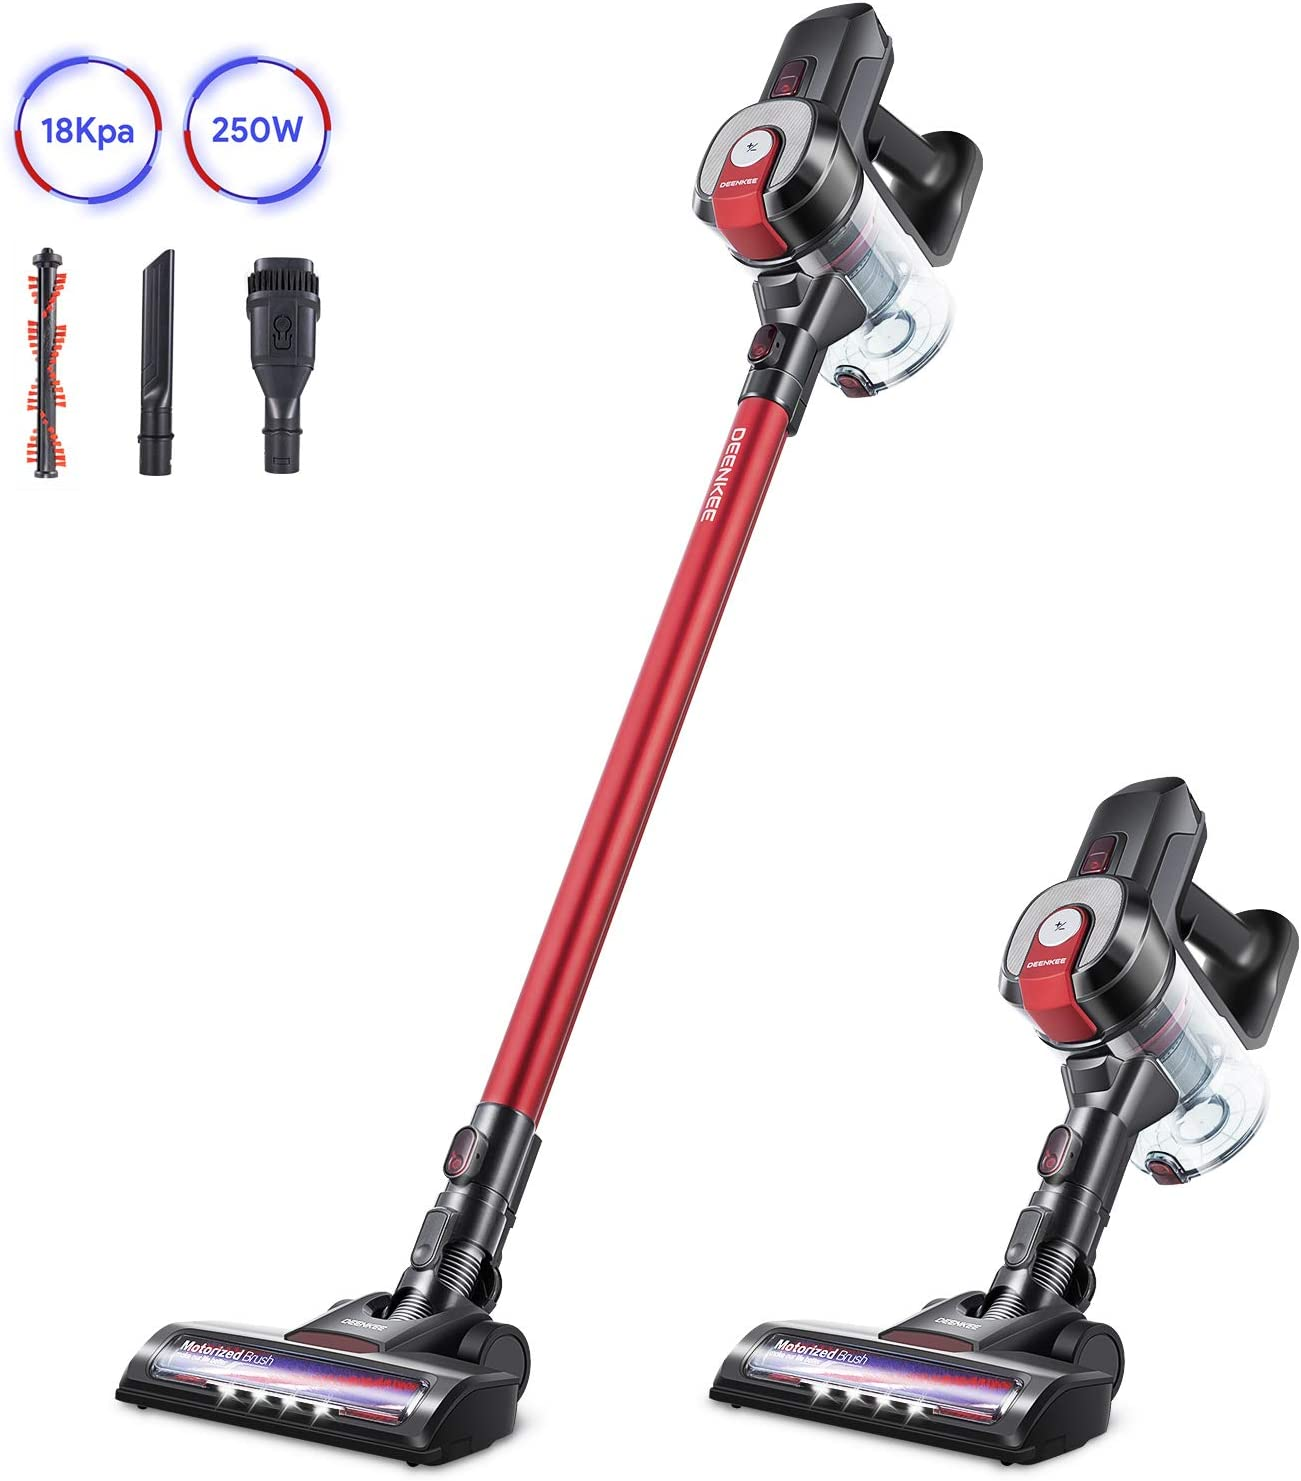 DEENKEE Cordless Vacuum DS100, 6 in 1 Handheld Stick Vacuum Cleaner 18KPa 250W Powerful Cleaning Lightweight Vacuum for Home Hard Floor Carpet Car Pet